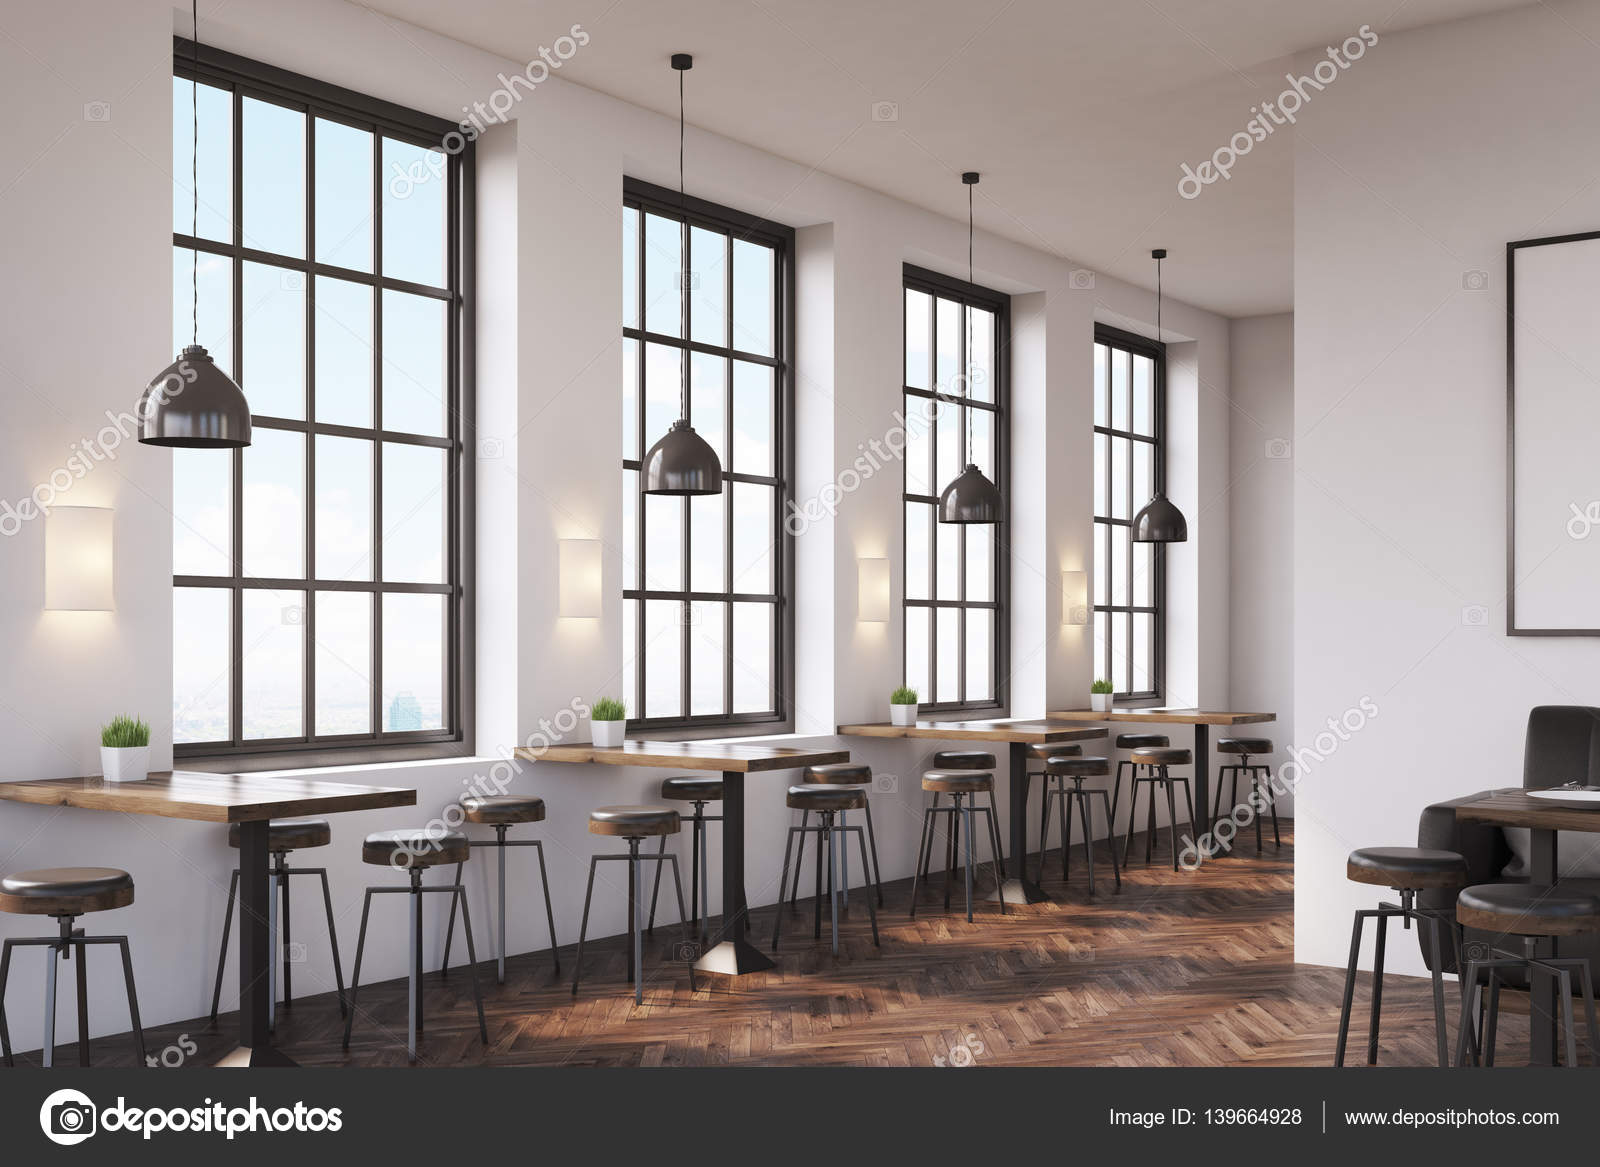 Picture of: Coffee Shop Interior With A Large Sofa Near A White Wall A Row Of Tables With